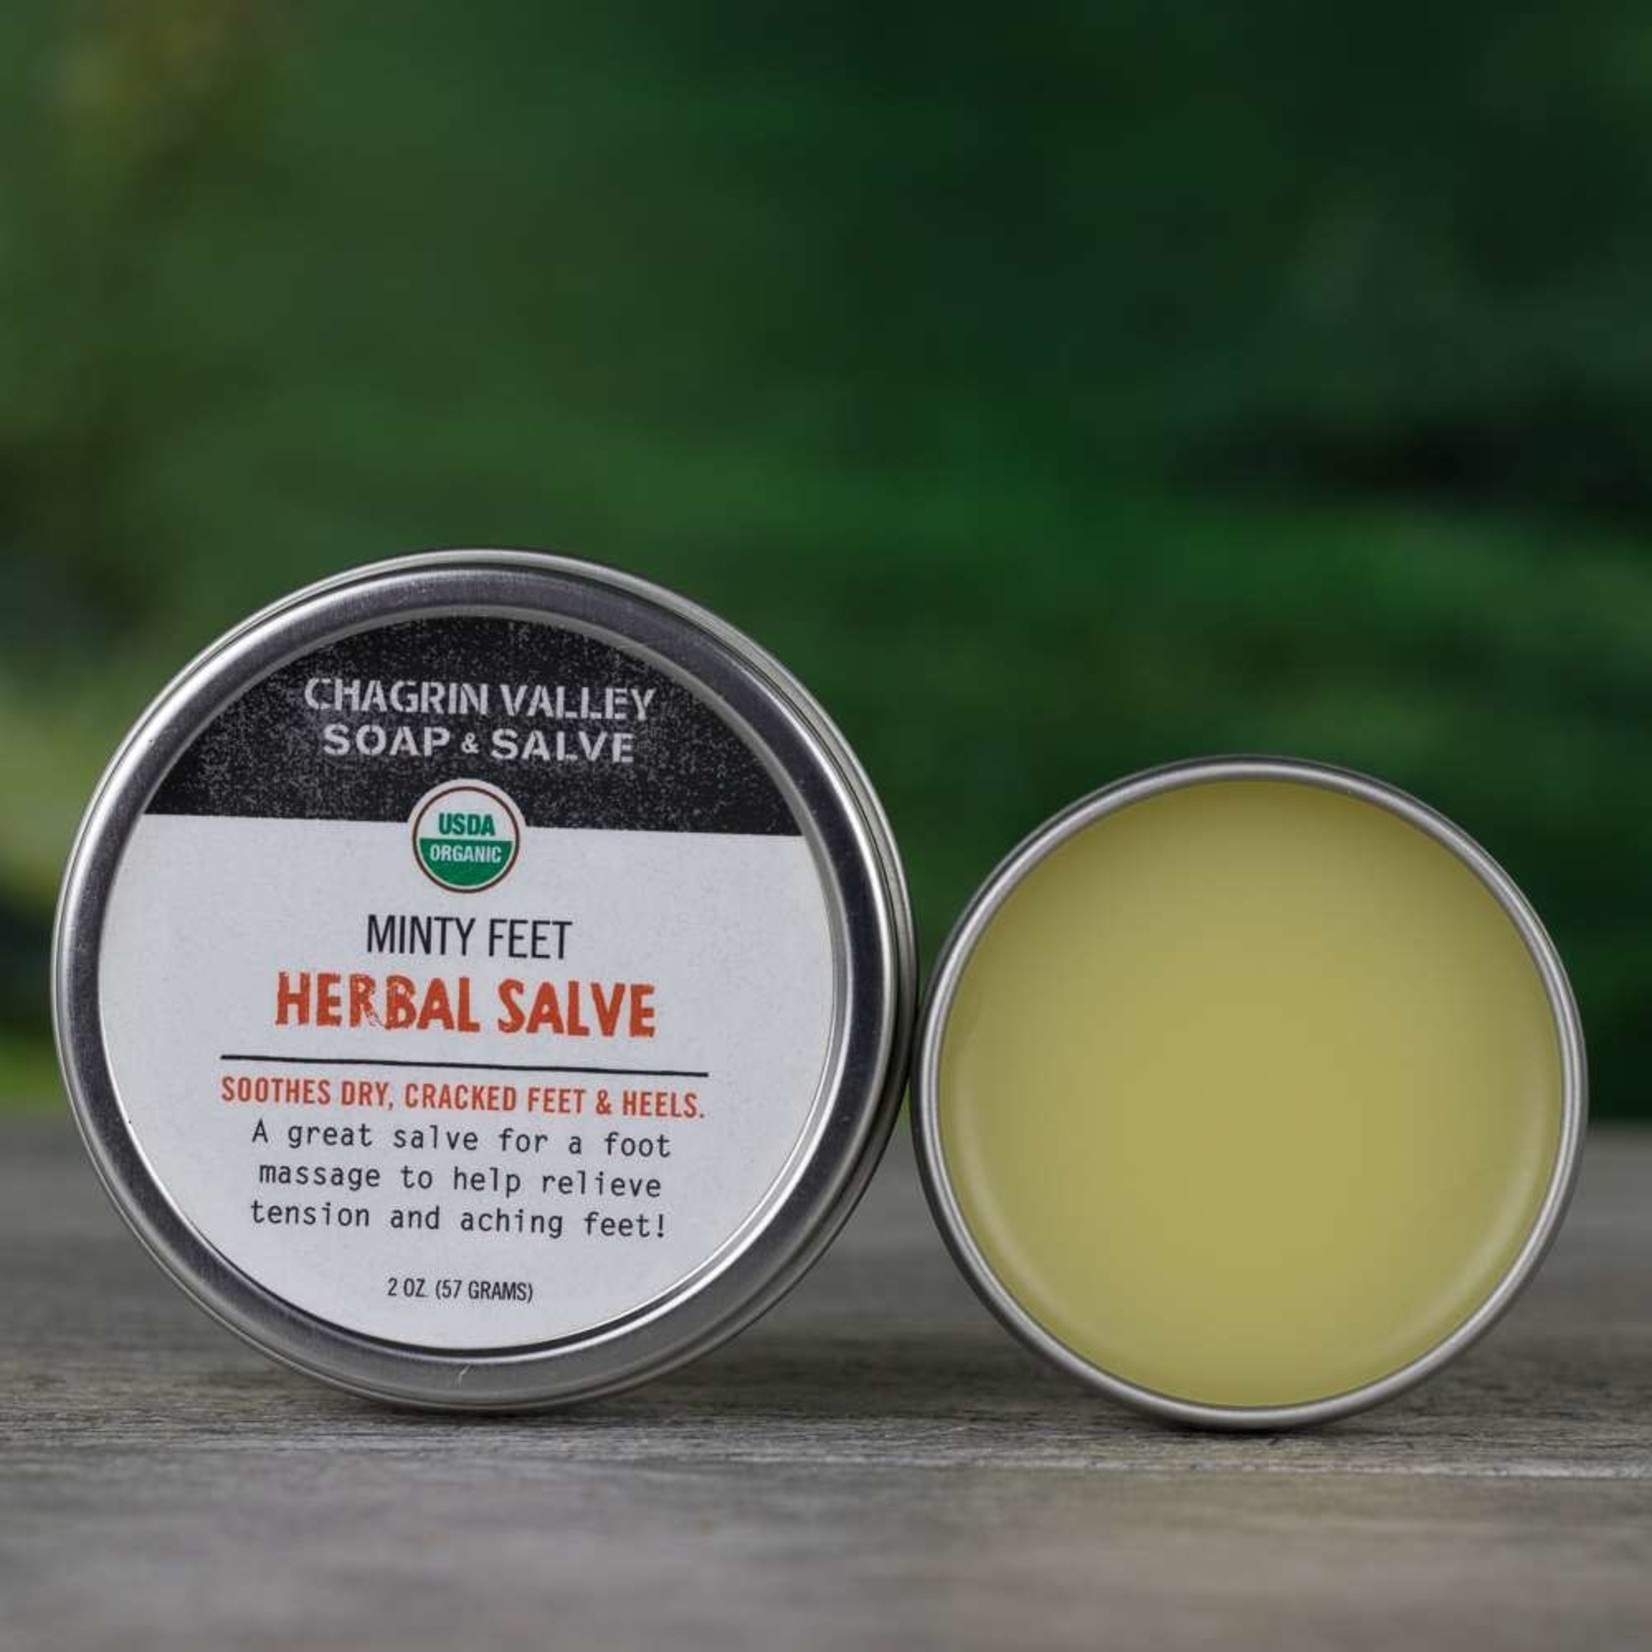 Chagrin Valley Soap and Salve Minty Feet Herbal Salve